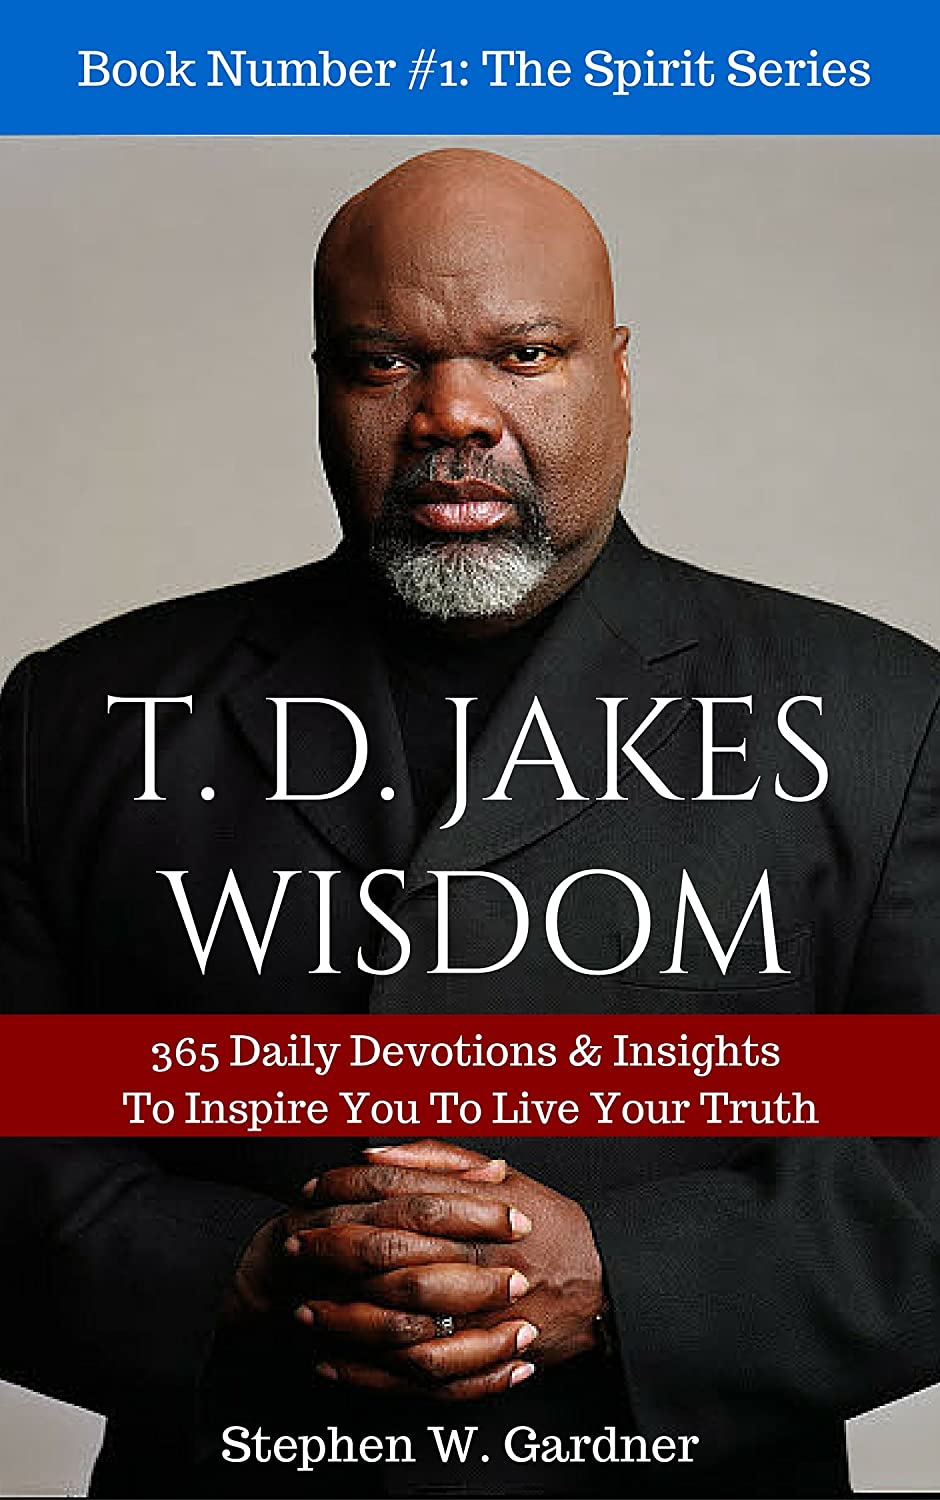 TD JAKES WISDOM: 365 Daily Devotions & Insights To Inspire You To Live Your  Truth (In The Spirit Book 1) eBook: Stephen W Gardner: Amazon com au: